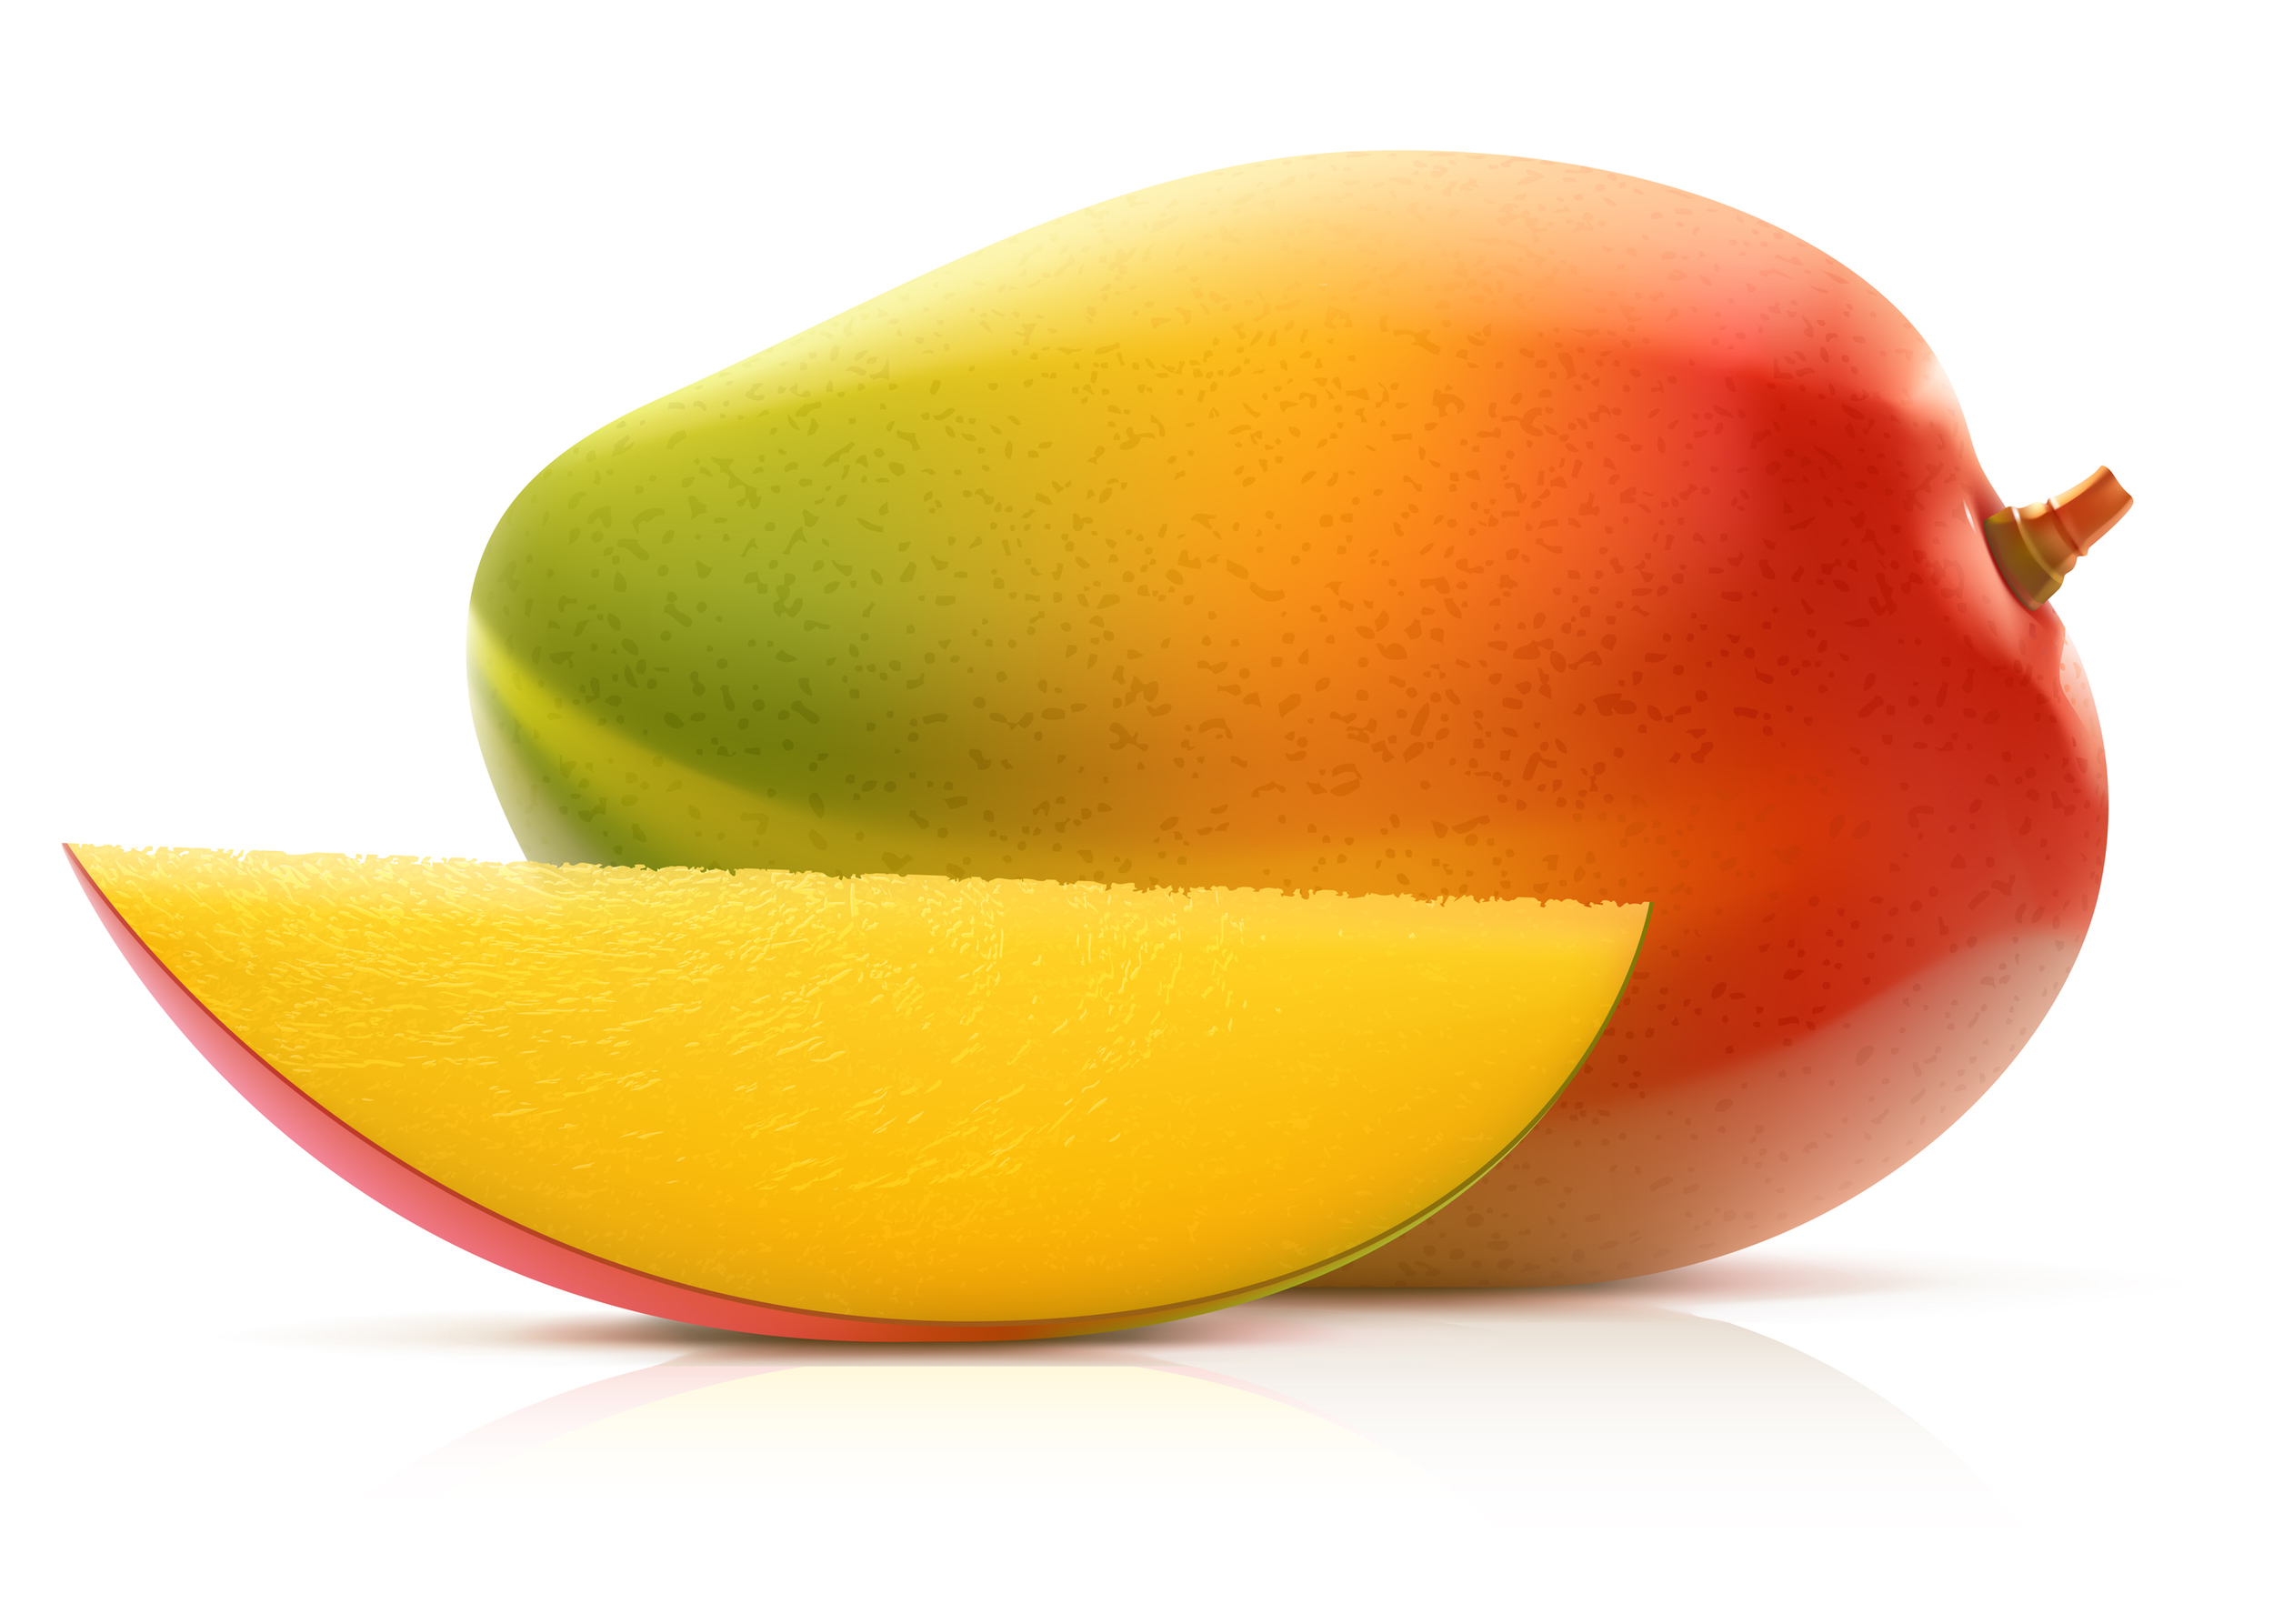 MANGO!! Flavored only with the highest quality Mango puree and some Yolo love. Come try the taste of summer for yourself!